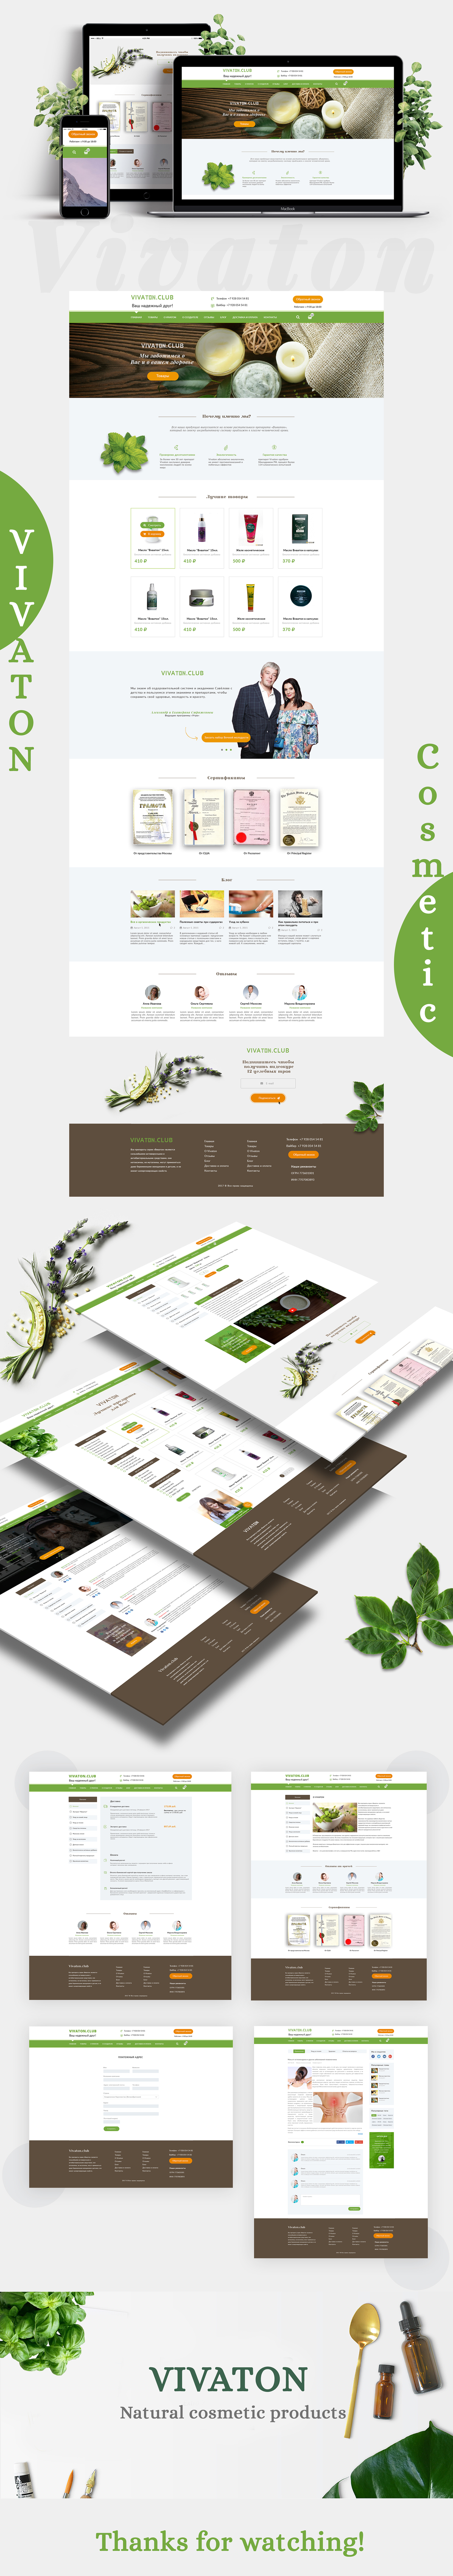 vivaton Natural cosmetic products Online store website